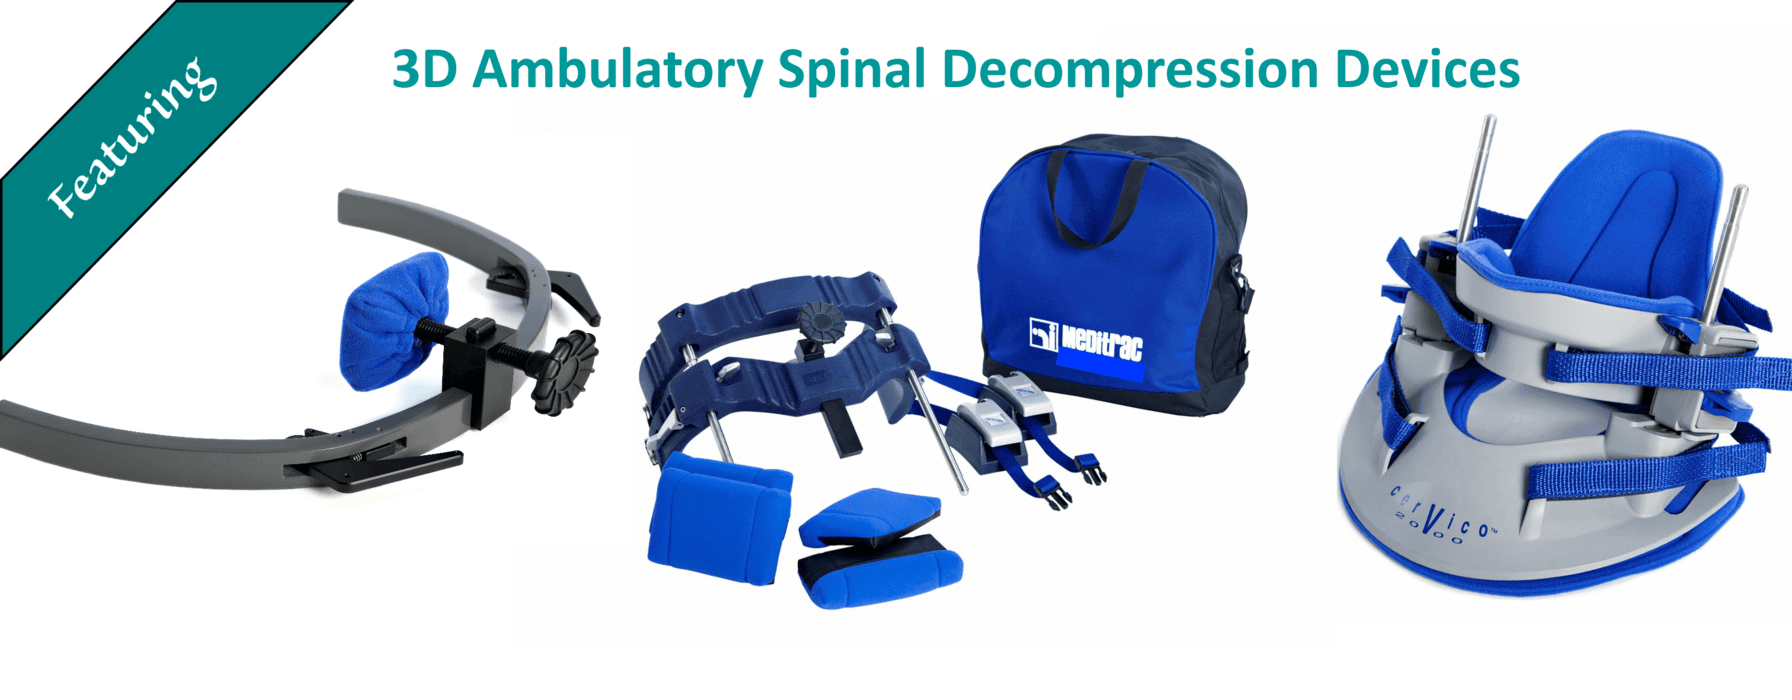 Meditrac 3D Ambulatory Spinal Decompression Devices, including the Vertetrac, Cervico 2000 & DBS Scoliosis Rail Attachment, for neck & lower back pain reliefl Vertetrac Cervico 2000 for non surgical spinal decompression